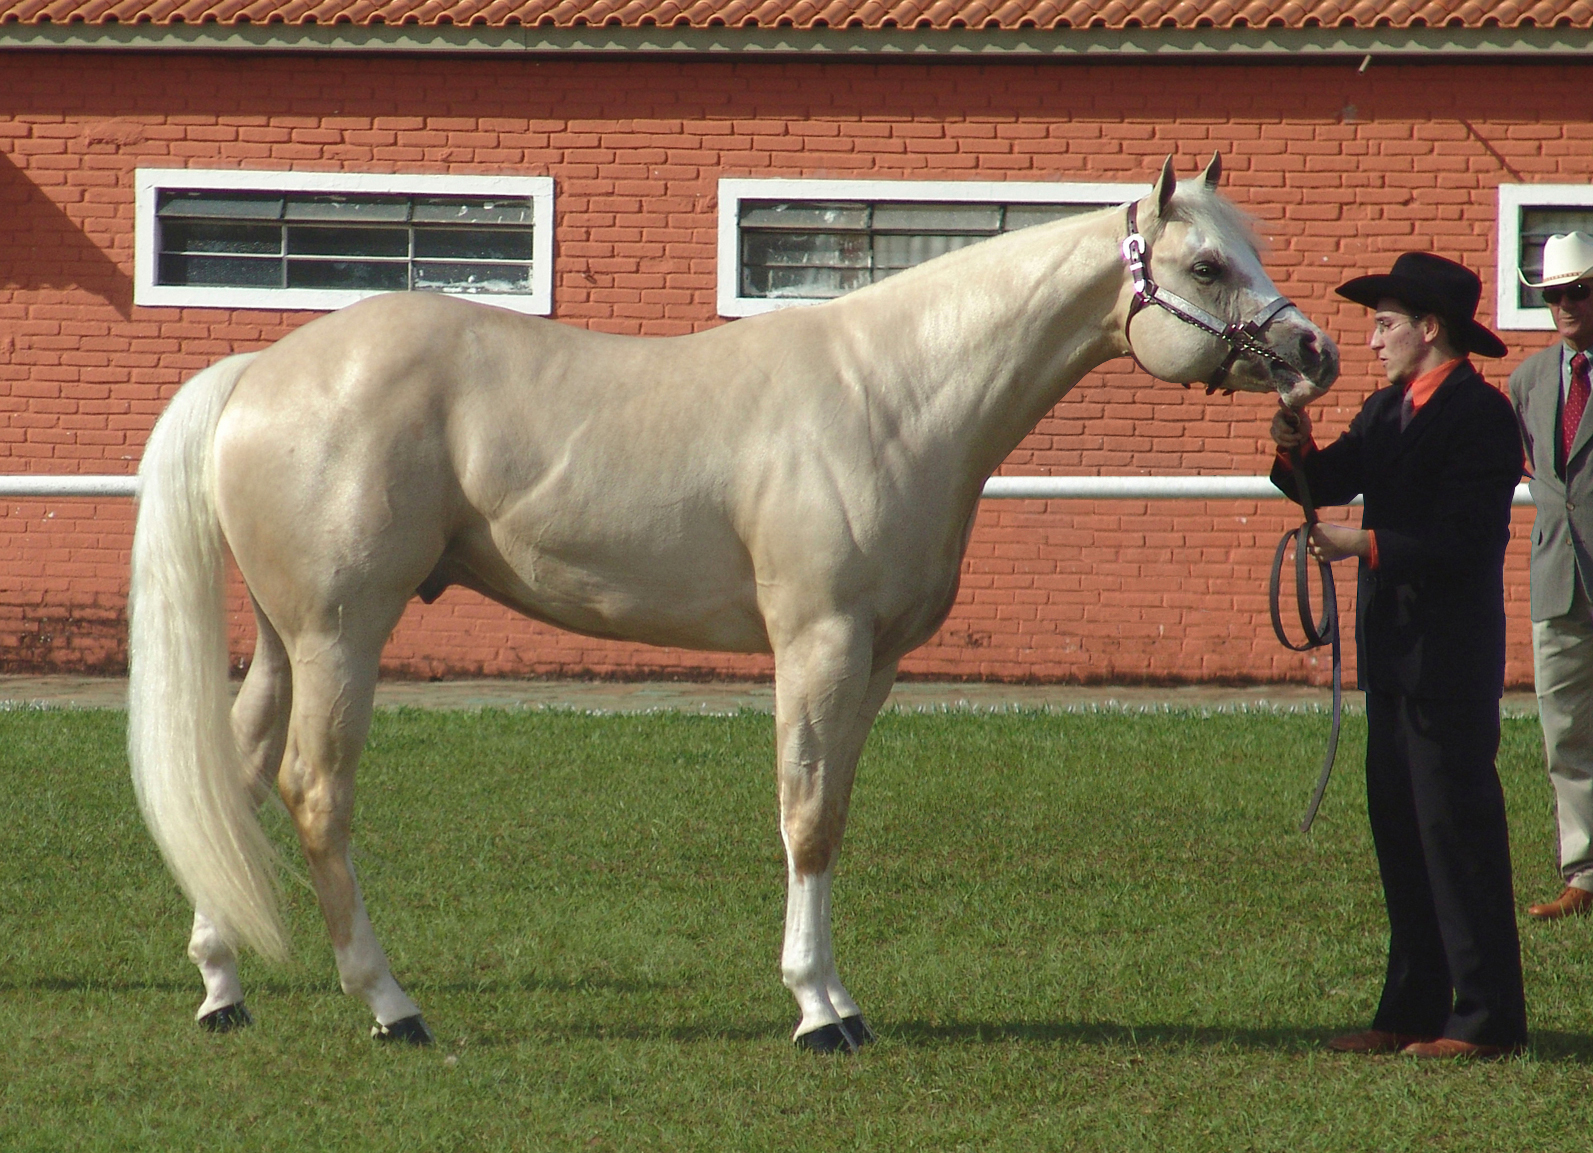 https://upload.wikimedia.org/wikipedia/commons/9/9d/Quarter_Horse%28REFON%29-cleaned.jpg